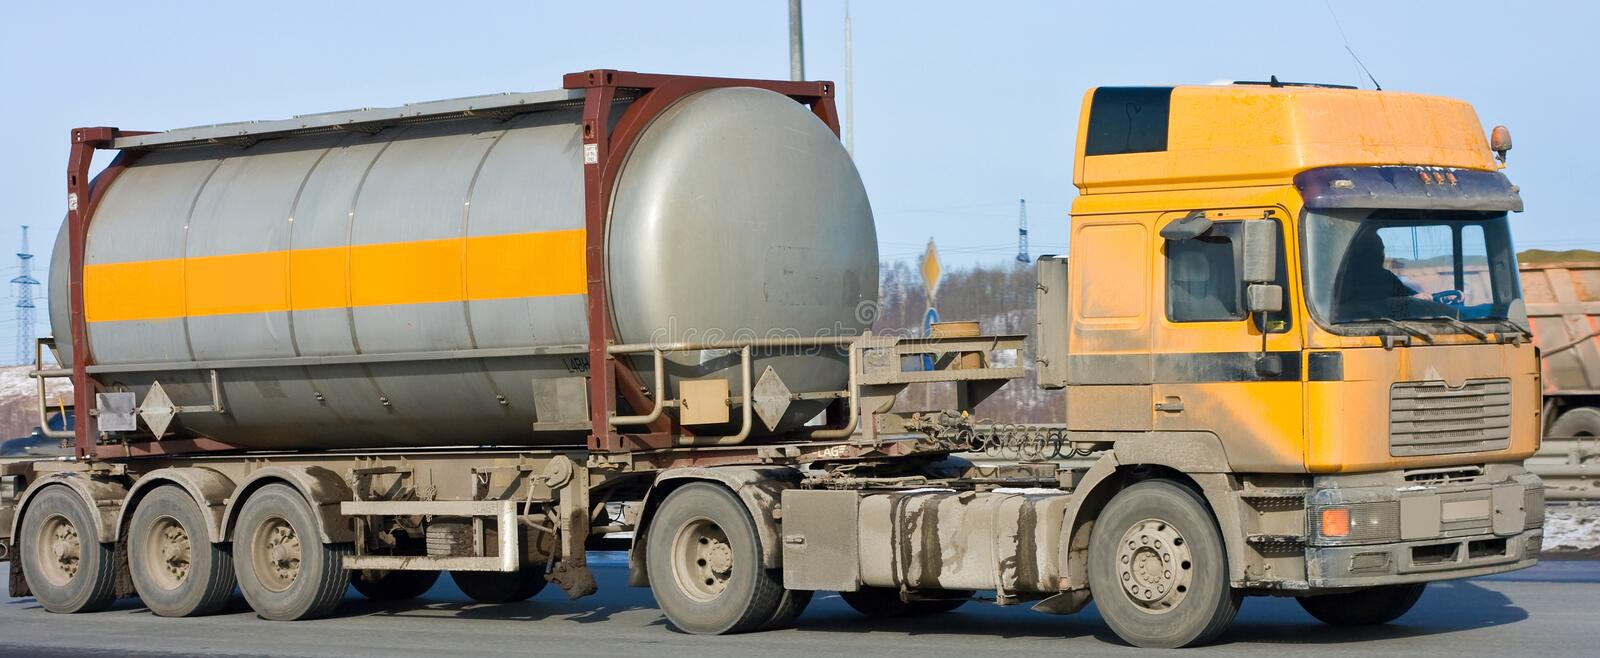 Tanker Truck Moves Chemicals Royalty Free Stock Photography